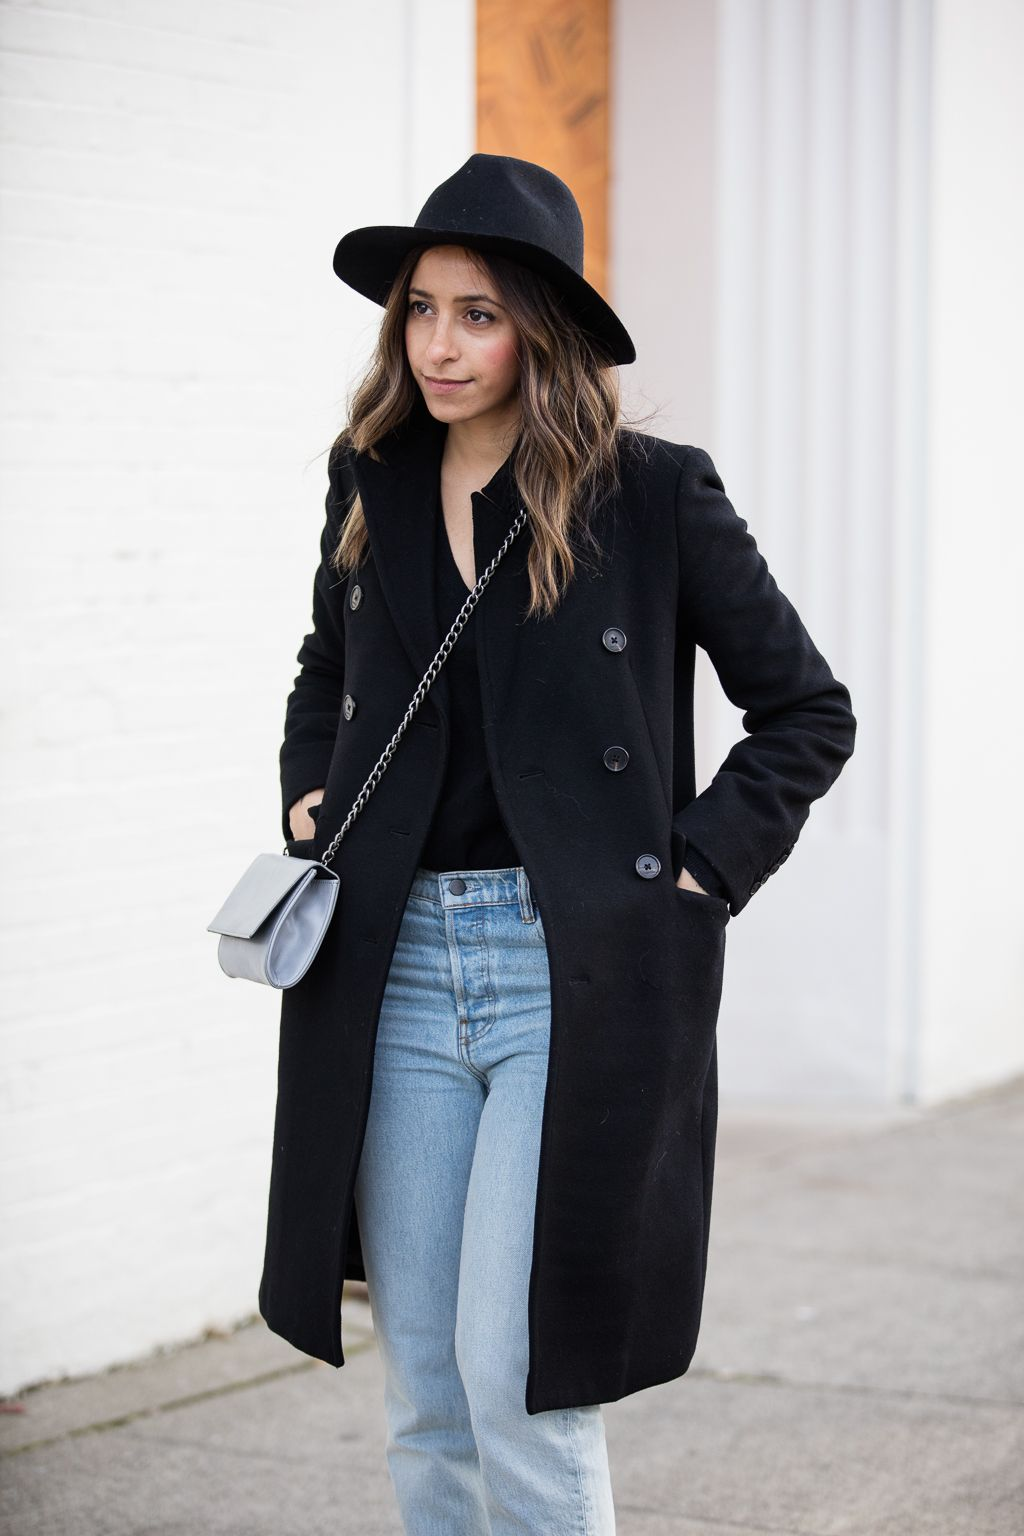 randa salloum, black coat, black peacoat, winter hat, winter jacket, winter fashion, fall fashion, fashion blogger, street style, style blogger, brunette, long hair, boyfriend jeans,